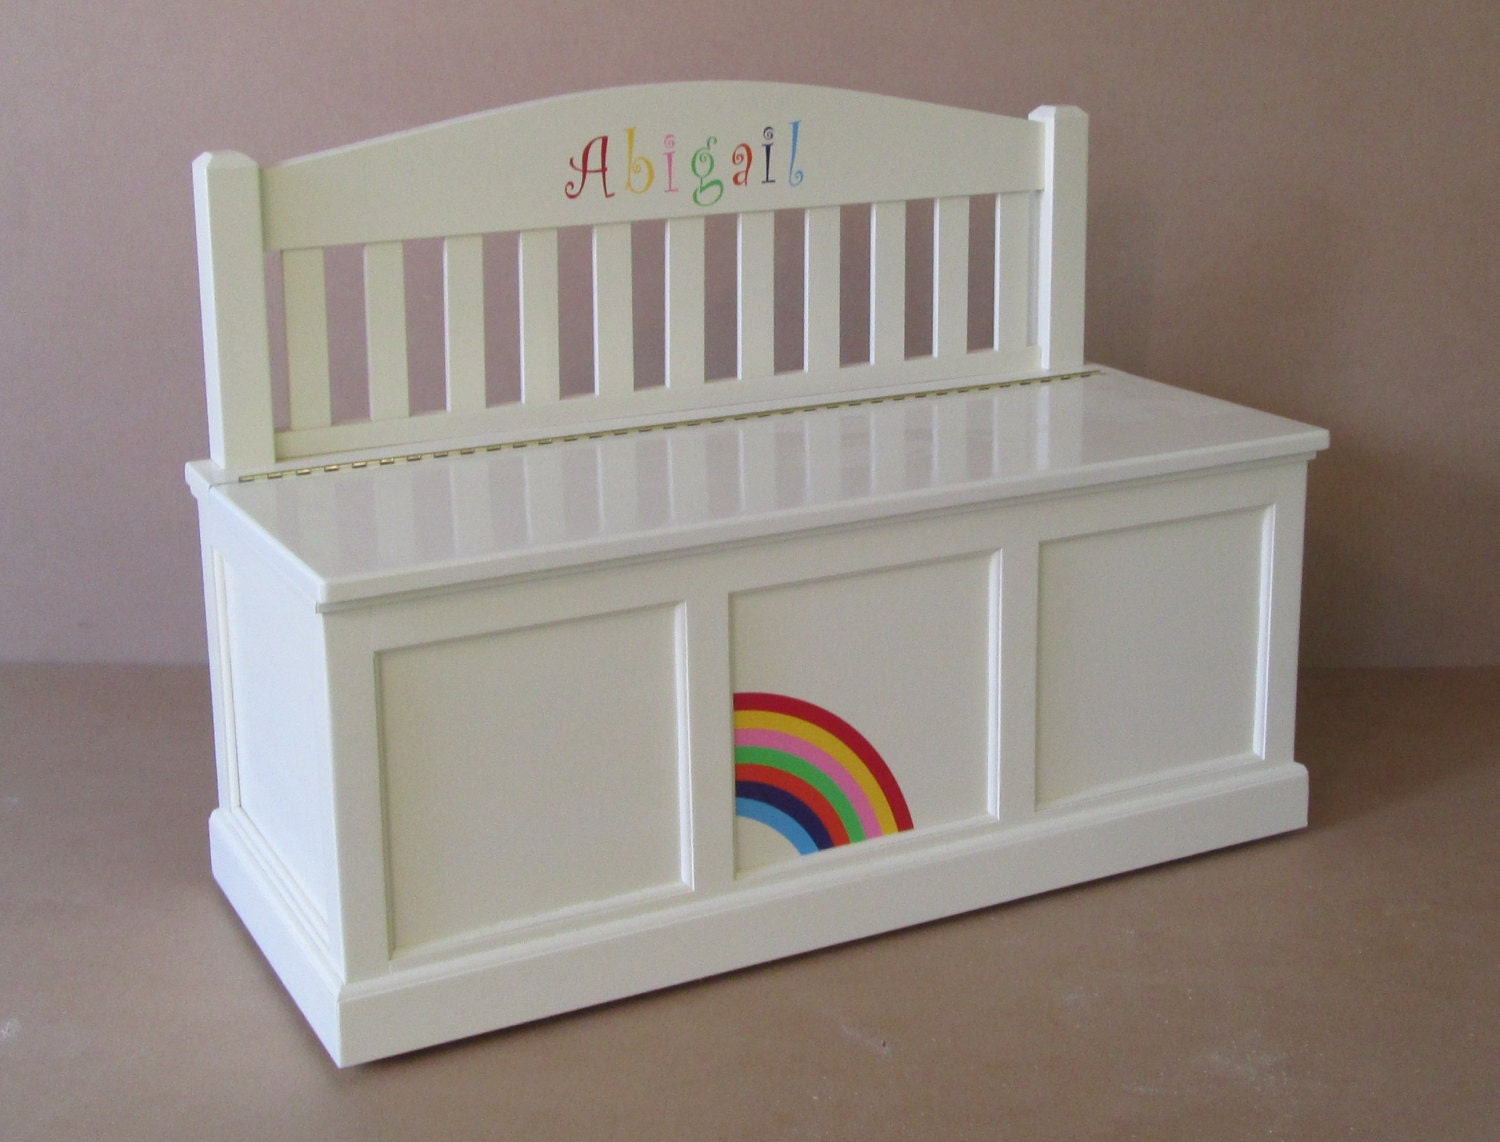 wooden toy chest bench antique white rainbow. Black Bedroom Furniture Sets. Home Design Ideas